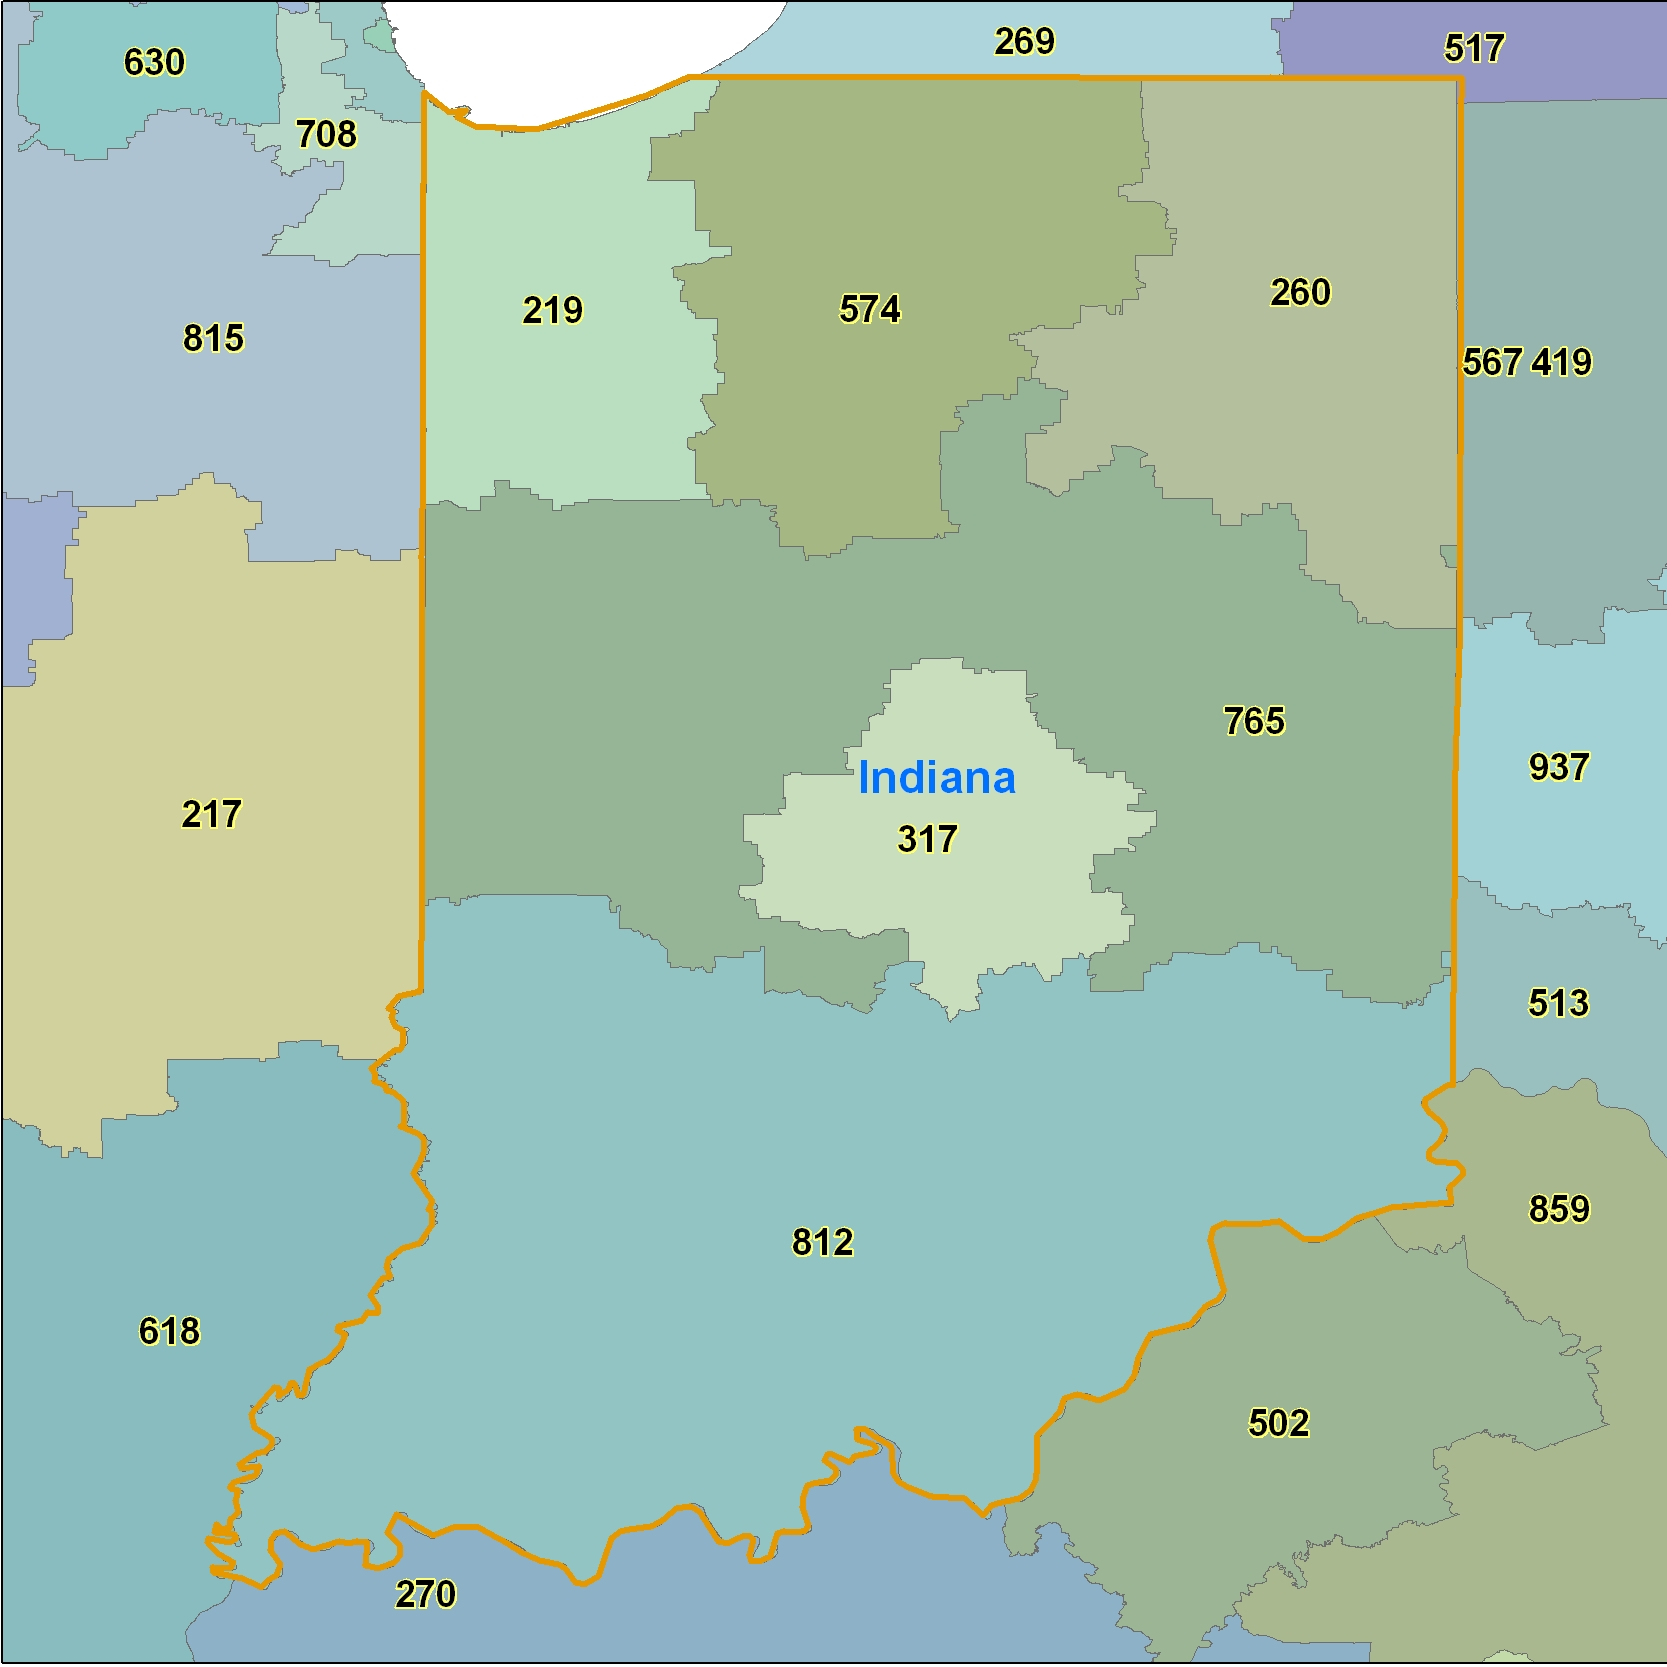 Indiana Area Code Maps Indiana Telephone Area Code Maps